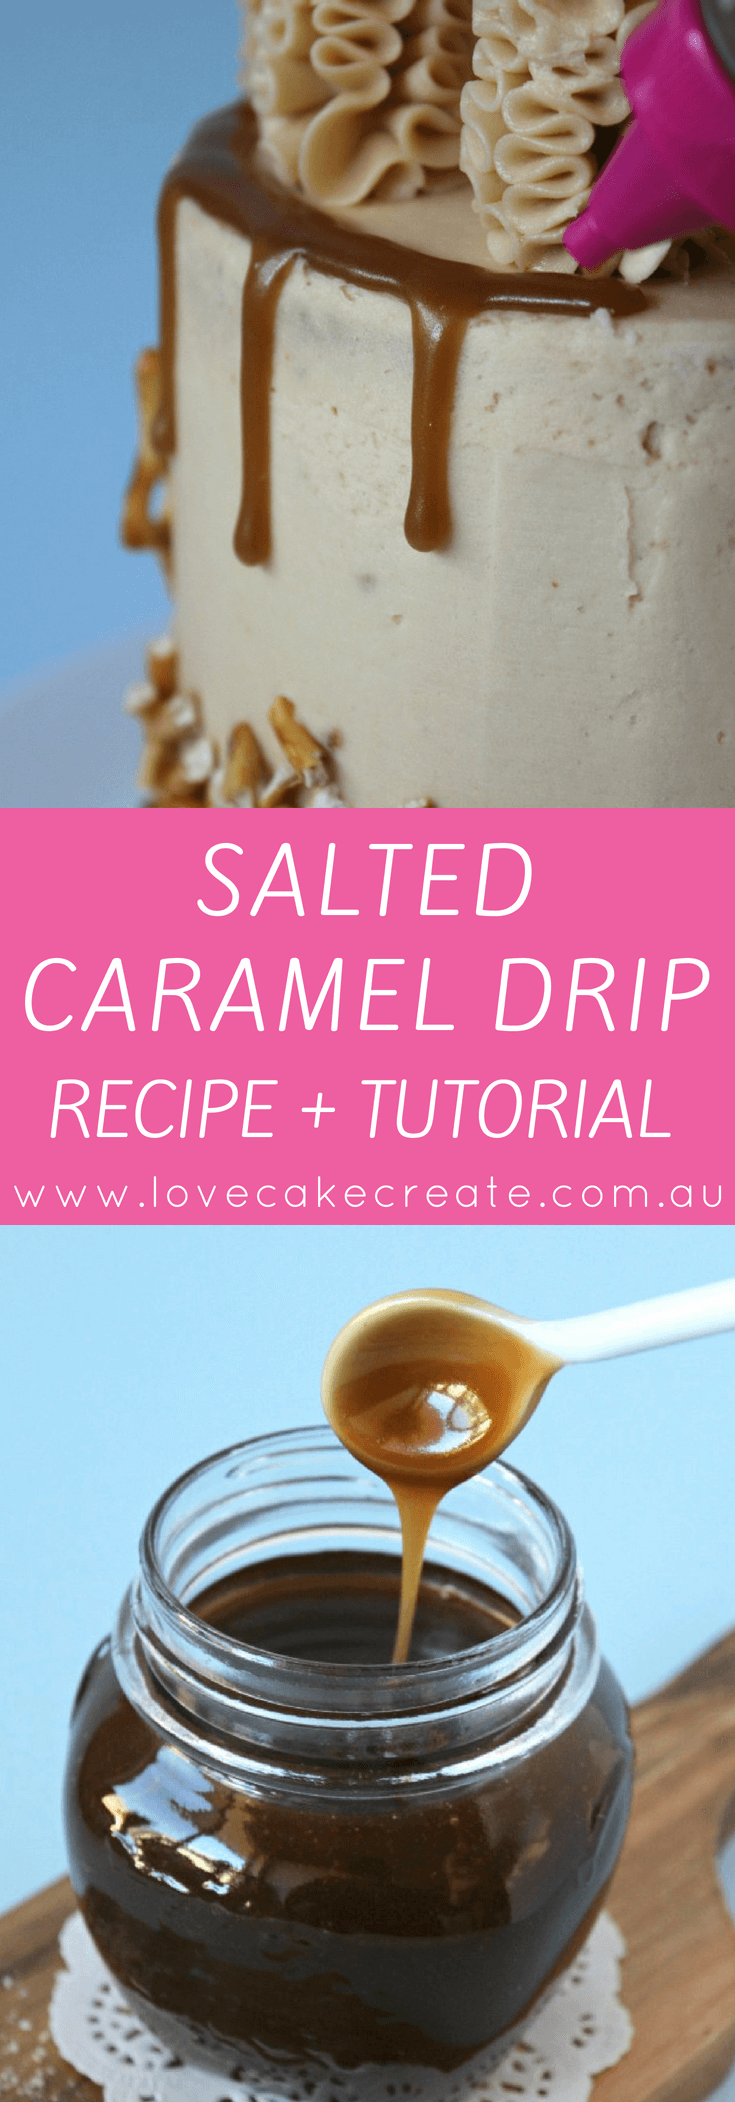 How to make a salted caramel drip - by Love Cake Create